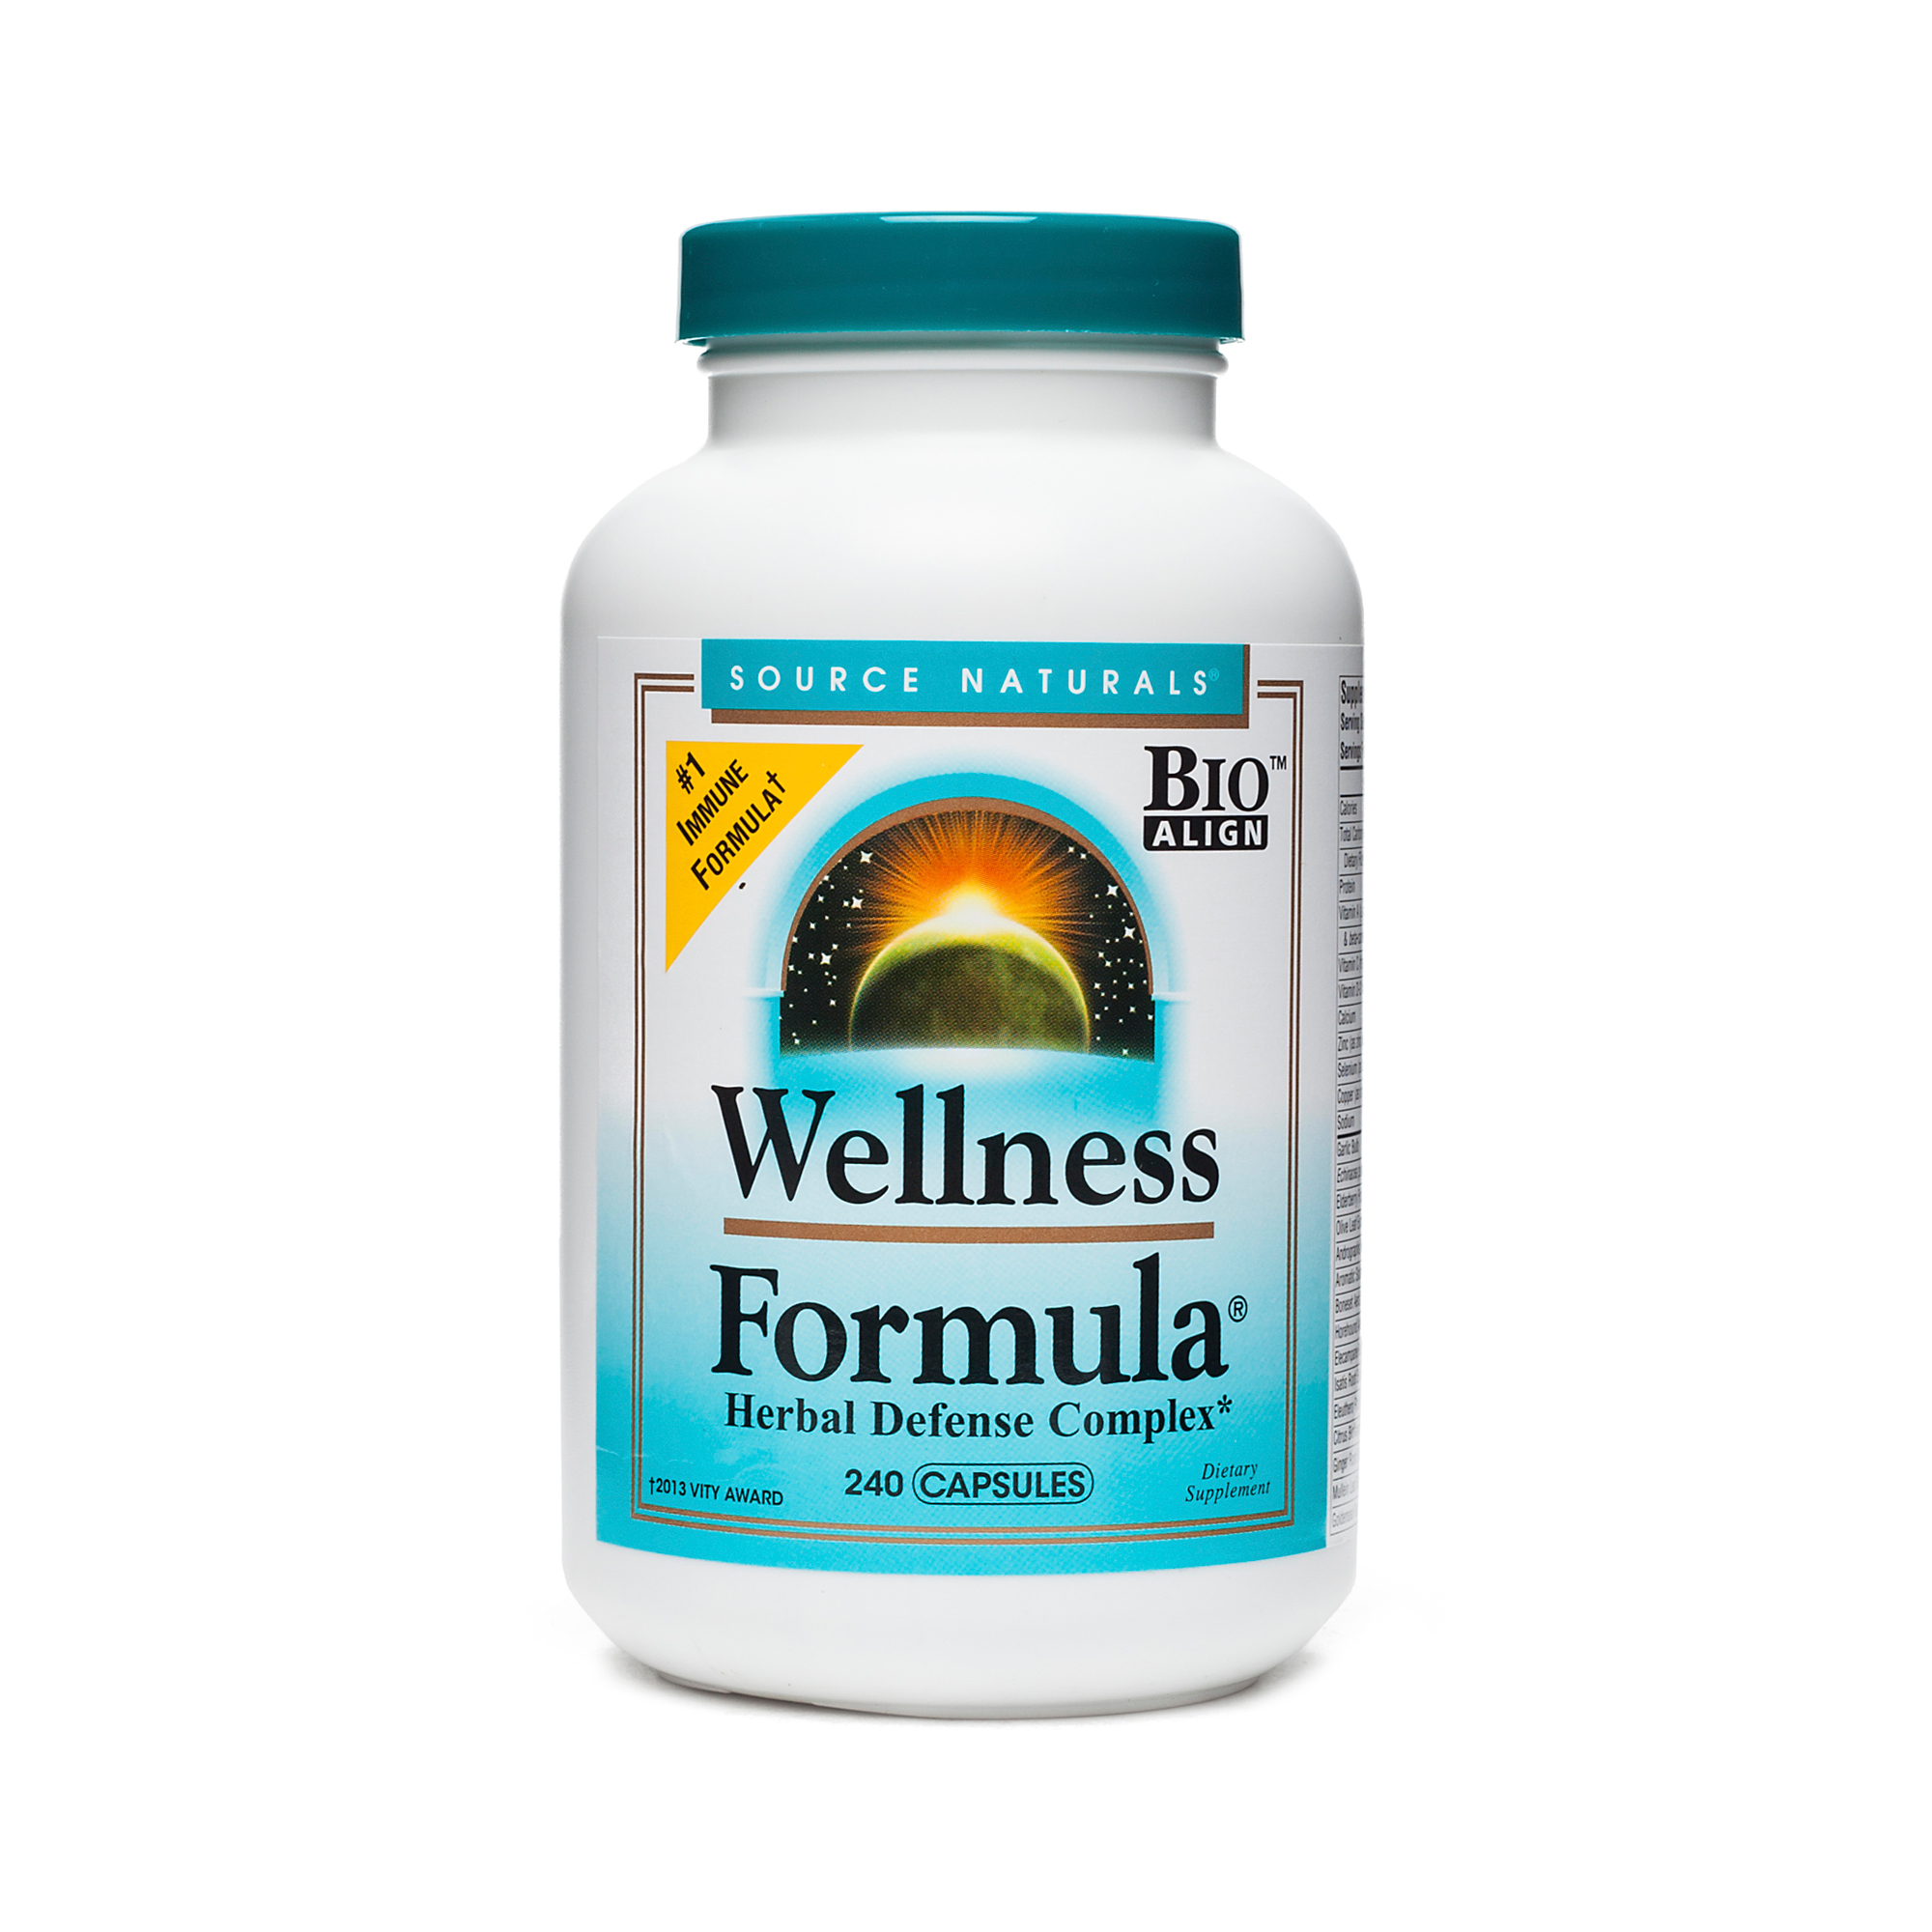 Source Naturals Wellness Formula Herbal Defense Complex 240 capsules per bottle